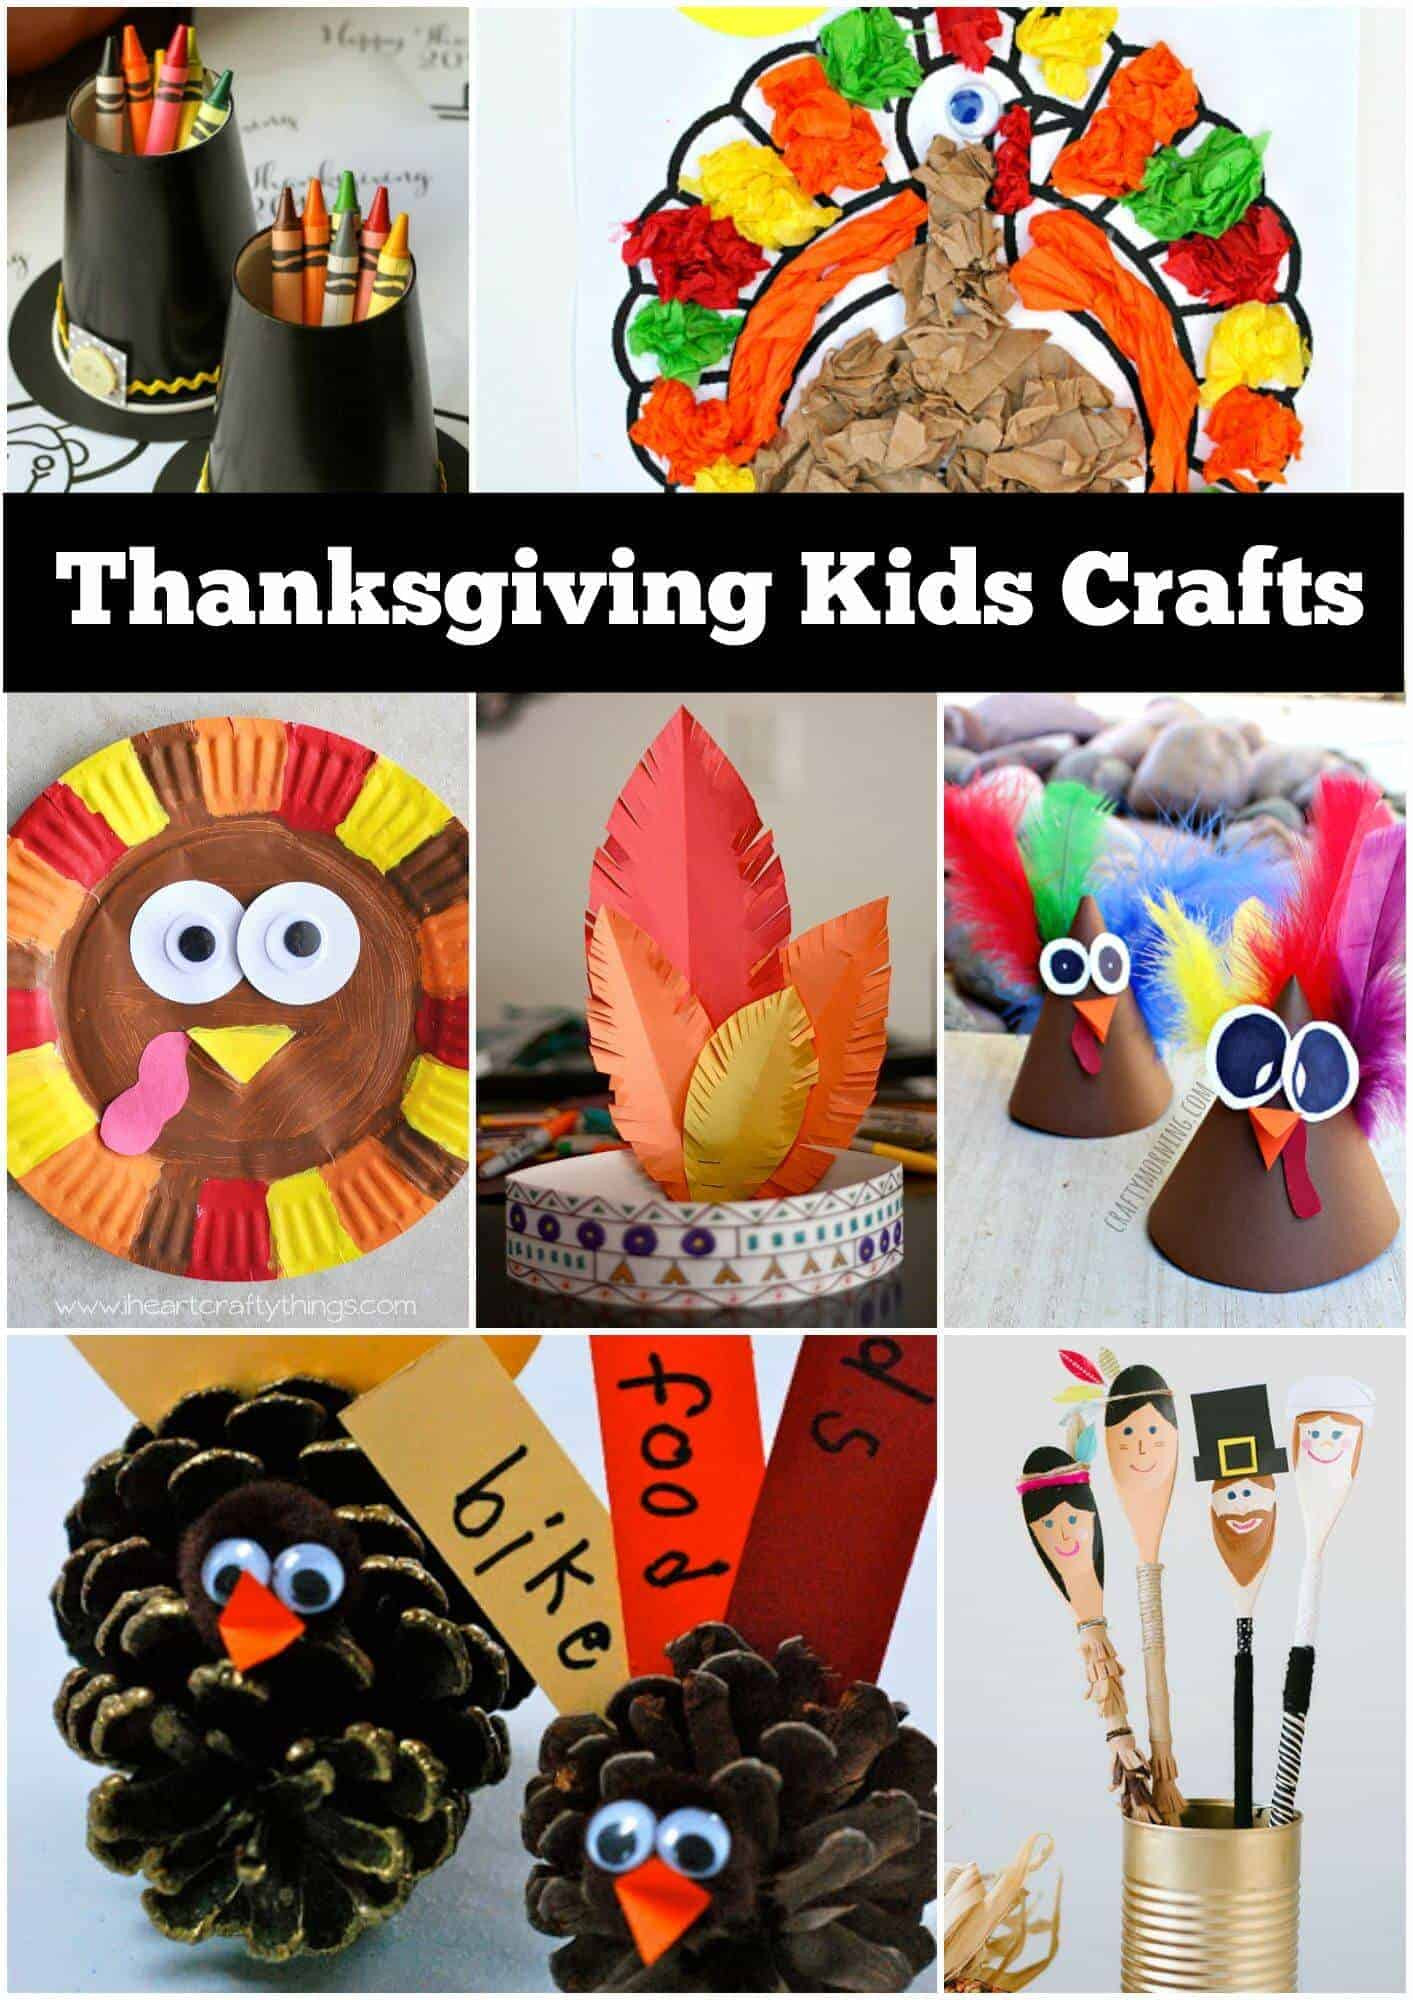 Crafts Ideas For Kids  12 Thanksgiving Craft Ideas for kids Page 2 of 2